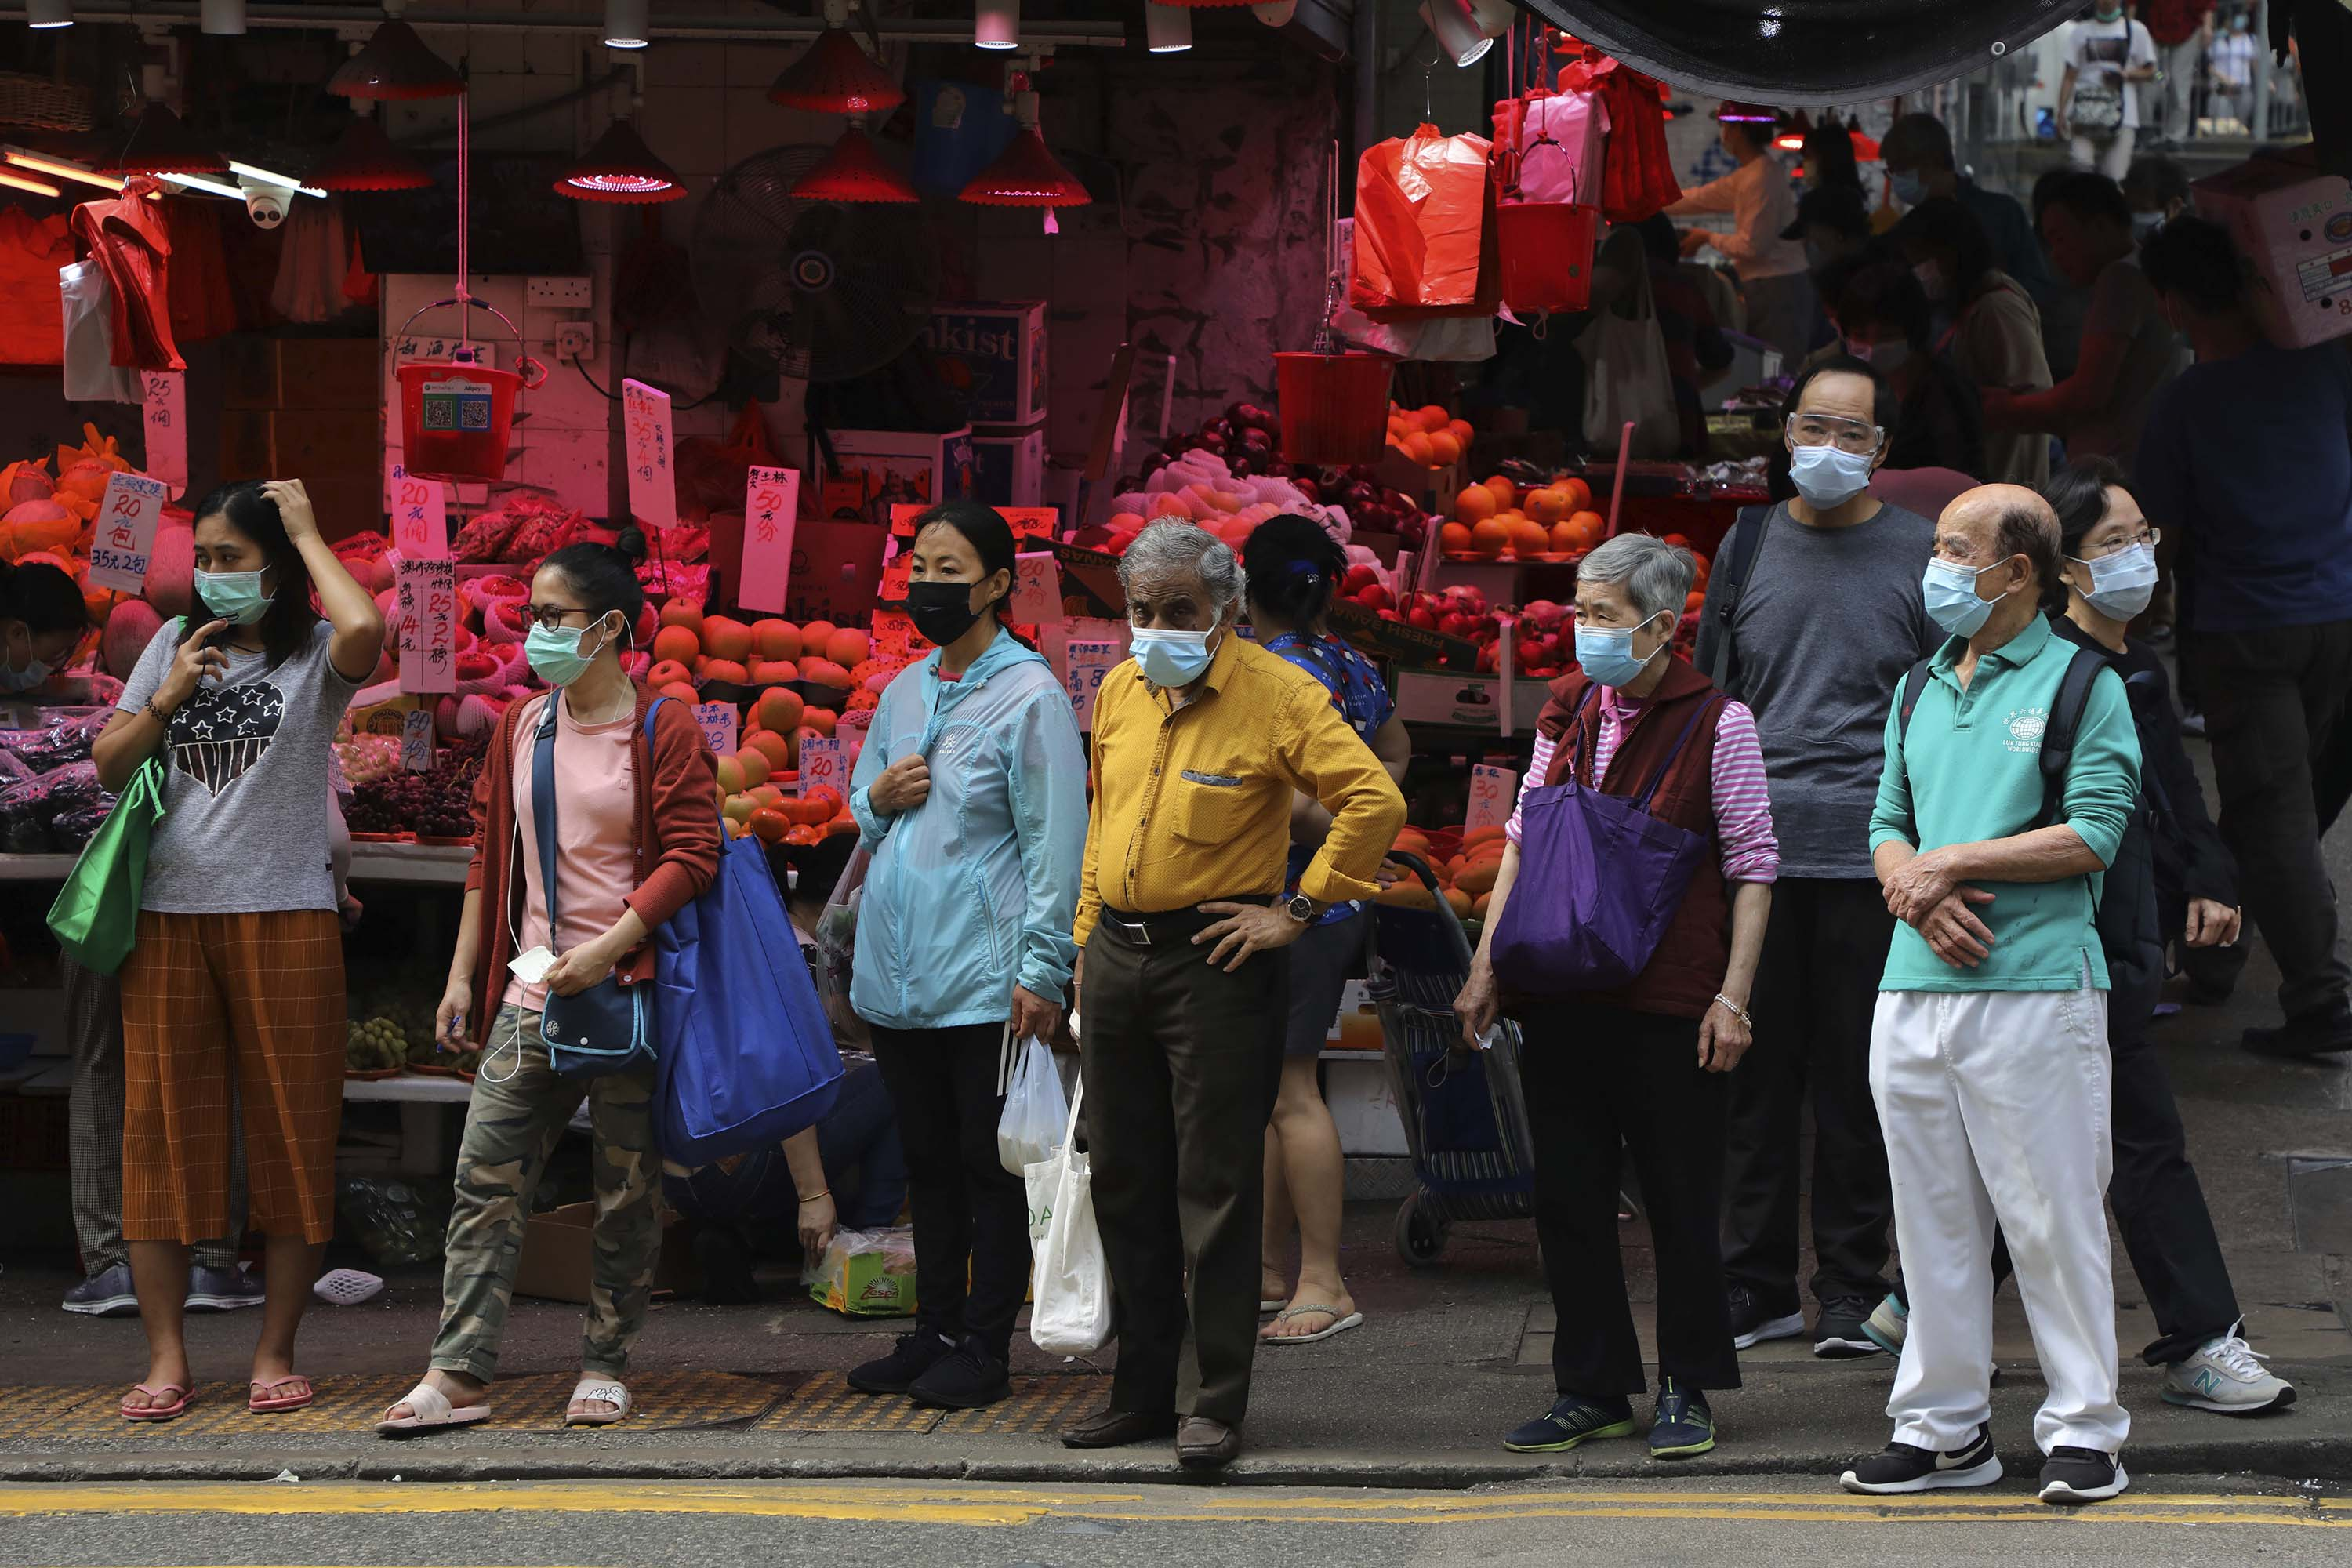 People wait to cross a street in Hong Kong on April 18.